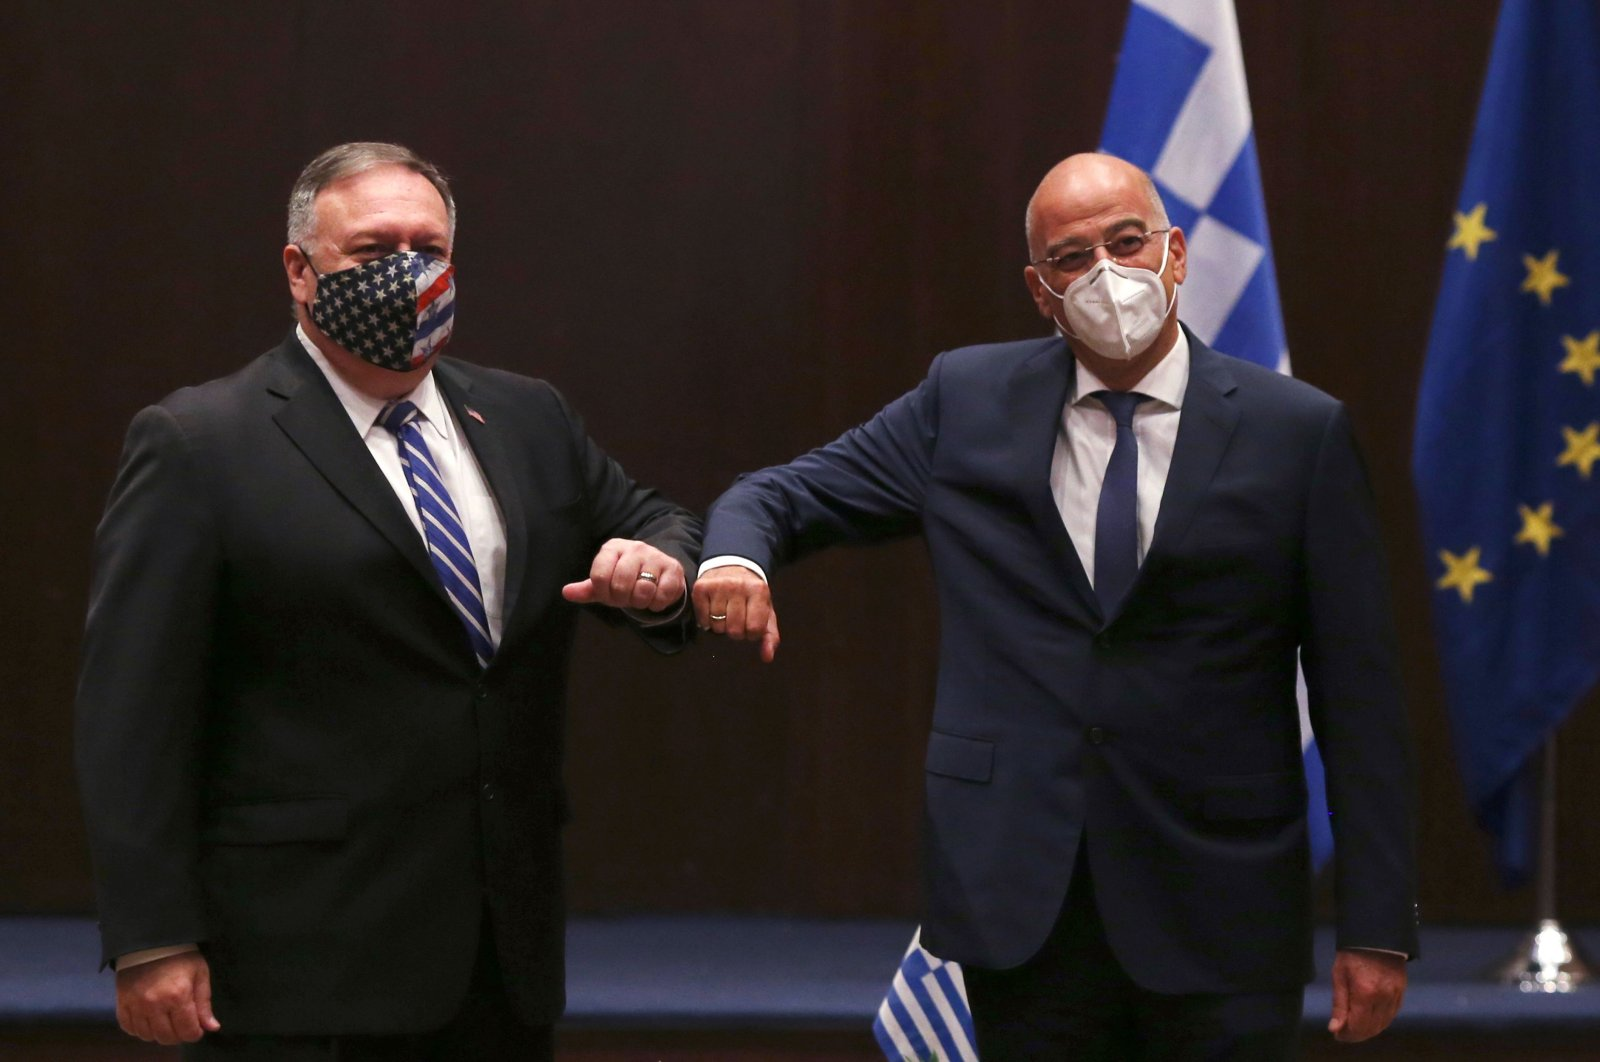 U.S. Secretary of State Mike Pompeo (L) and Greek Foreign Minister Nikos Dendias touch elbows during their meeting in the northern city of Thessaloniki, Sept. 28, 2020. (AFP Photo)